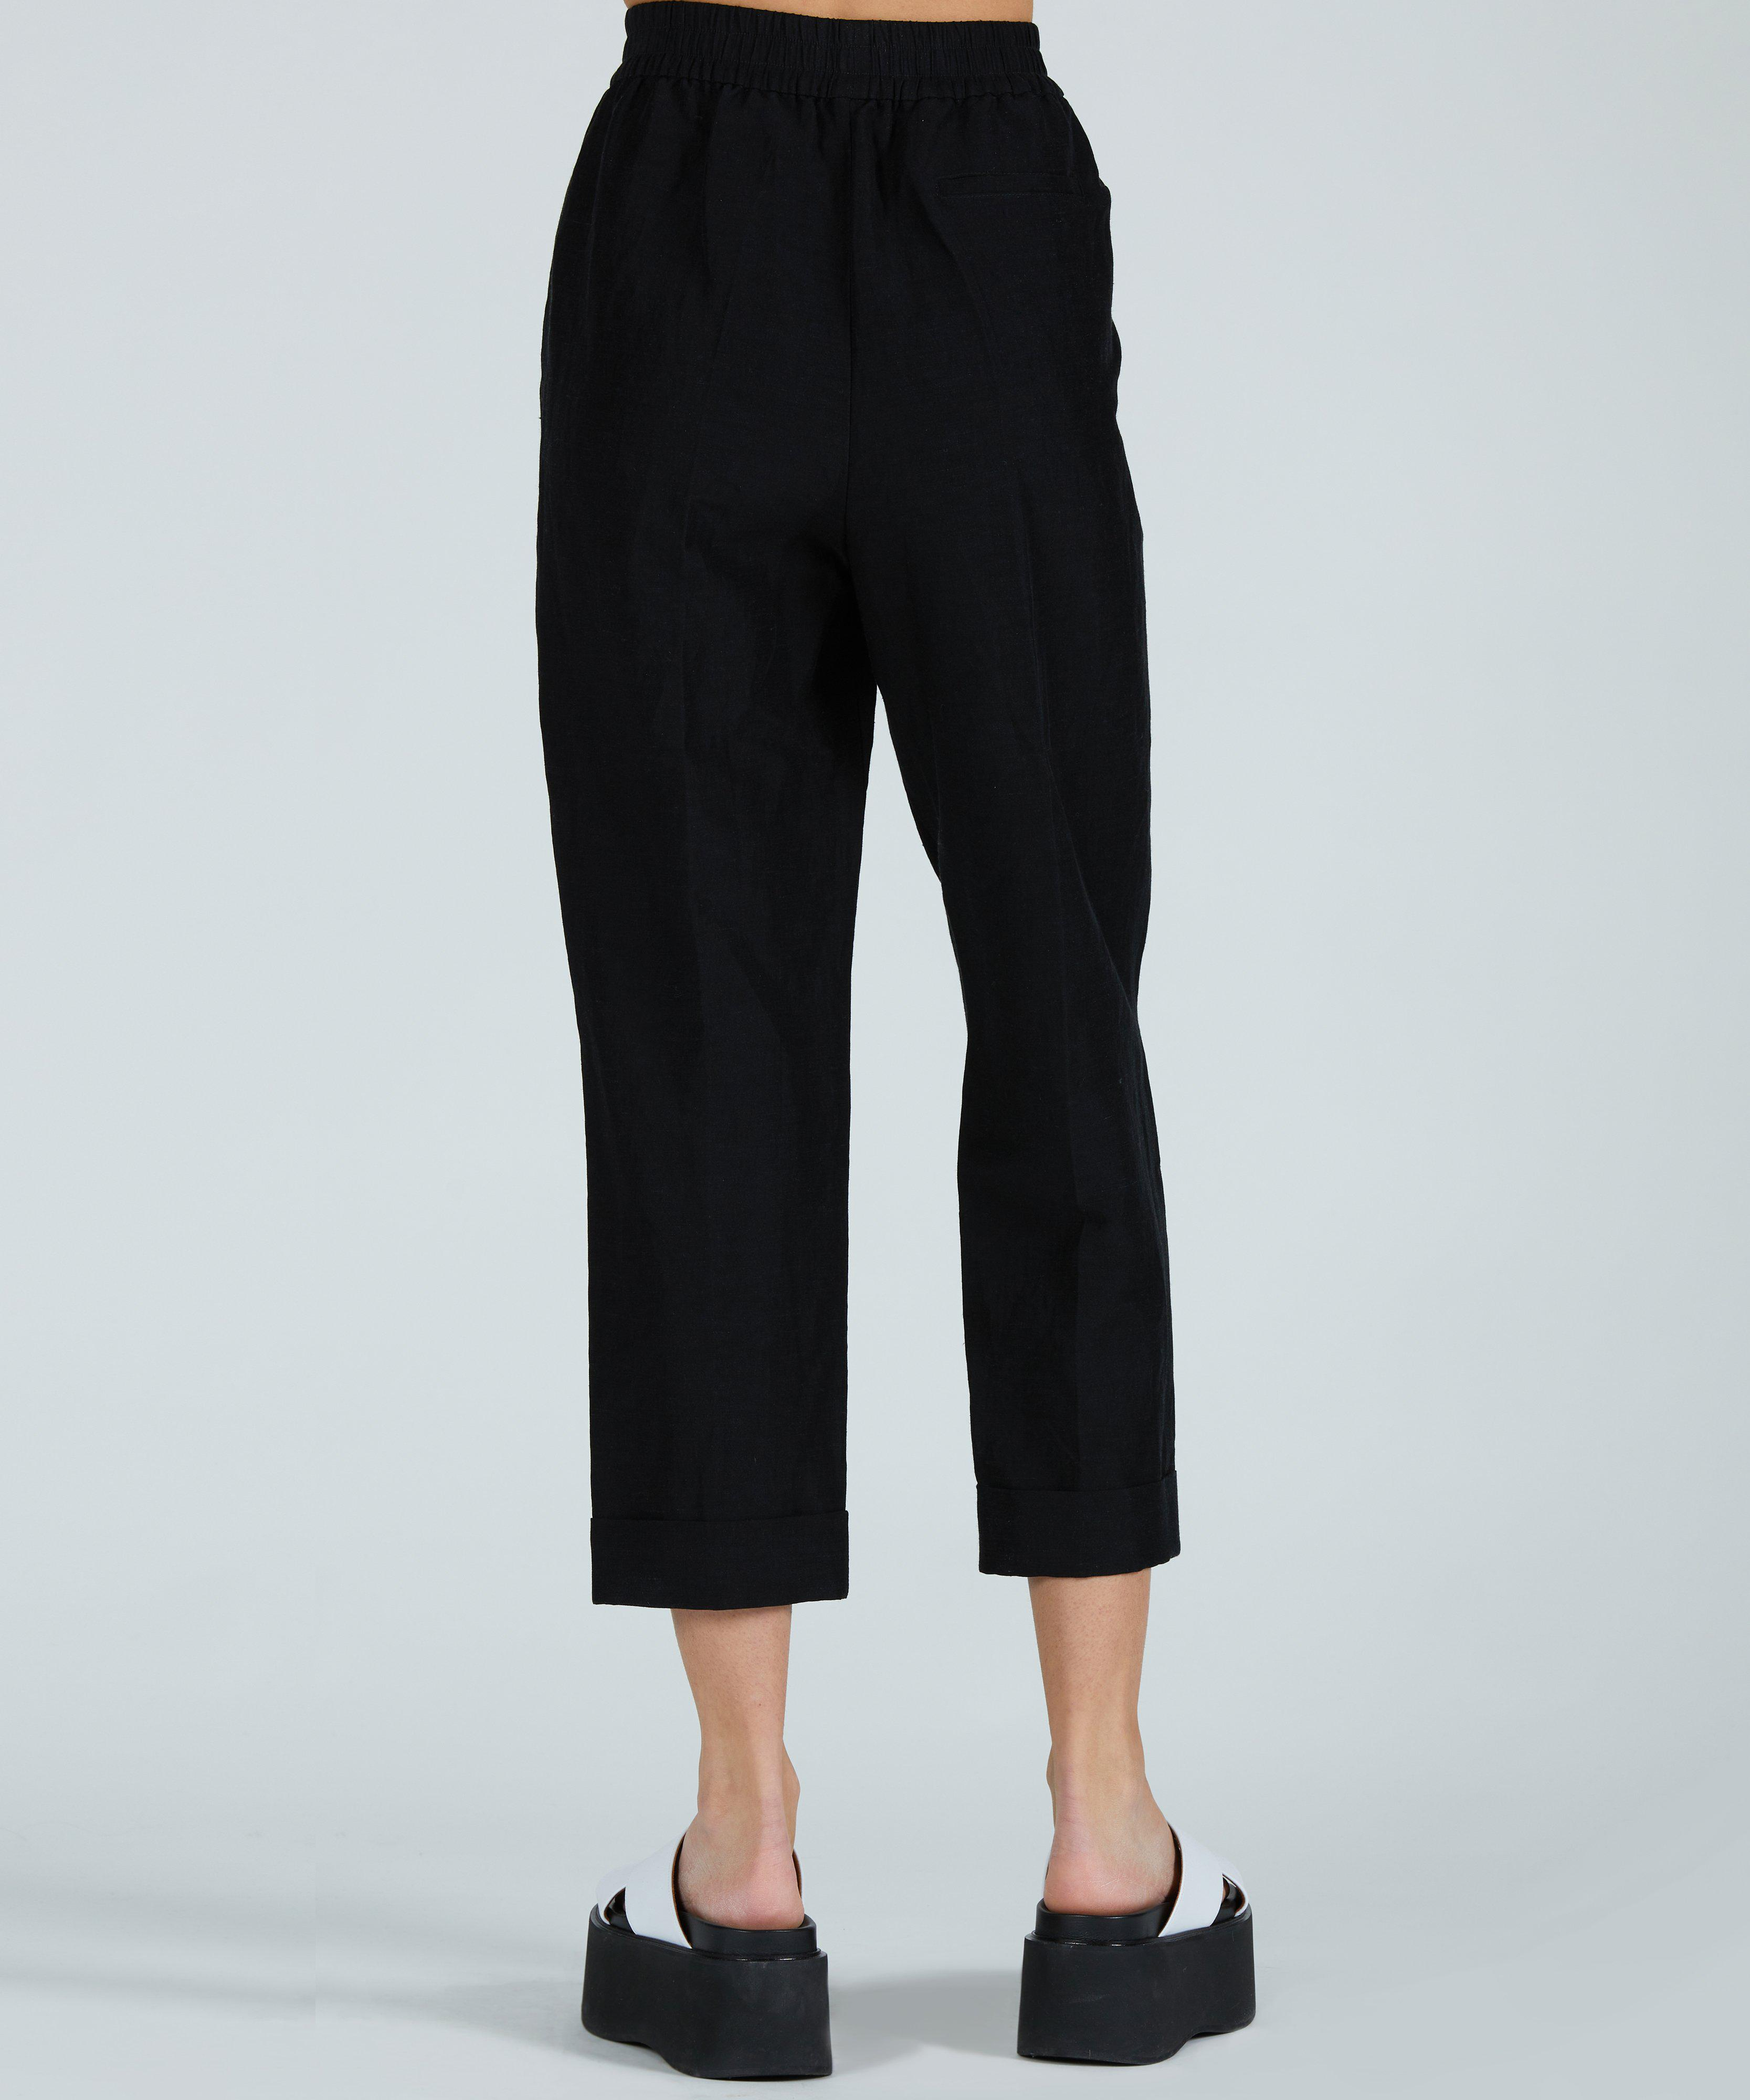 Linen Rayon Pull-On Cuff Pant - Black 2